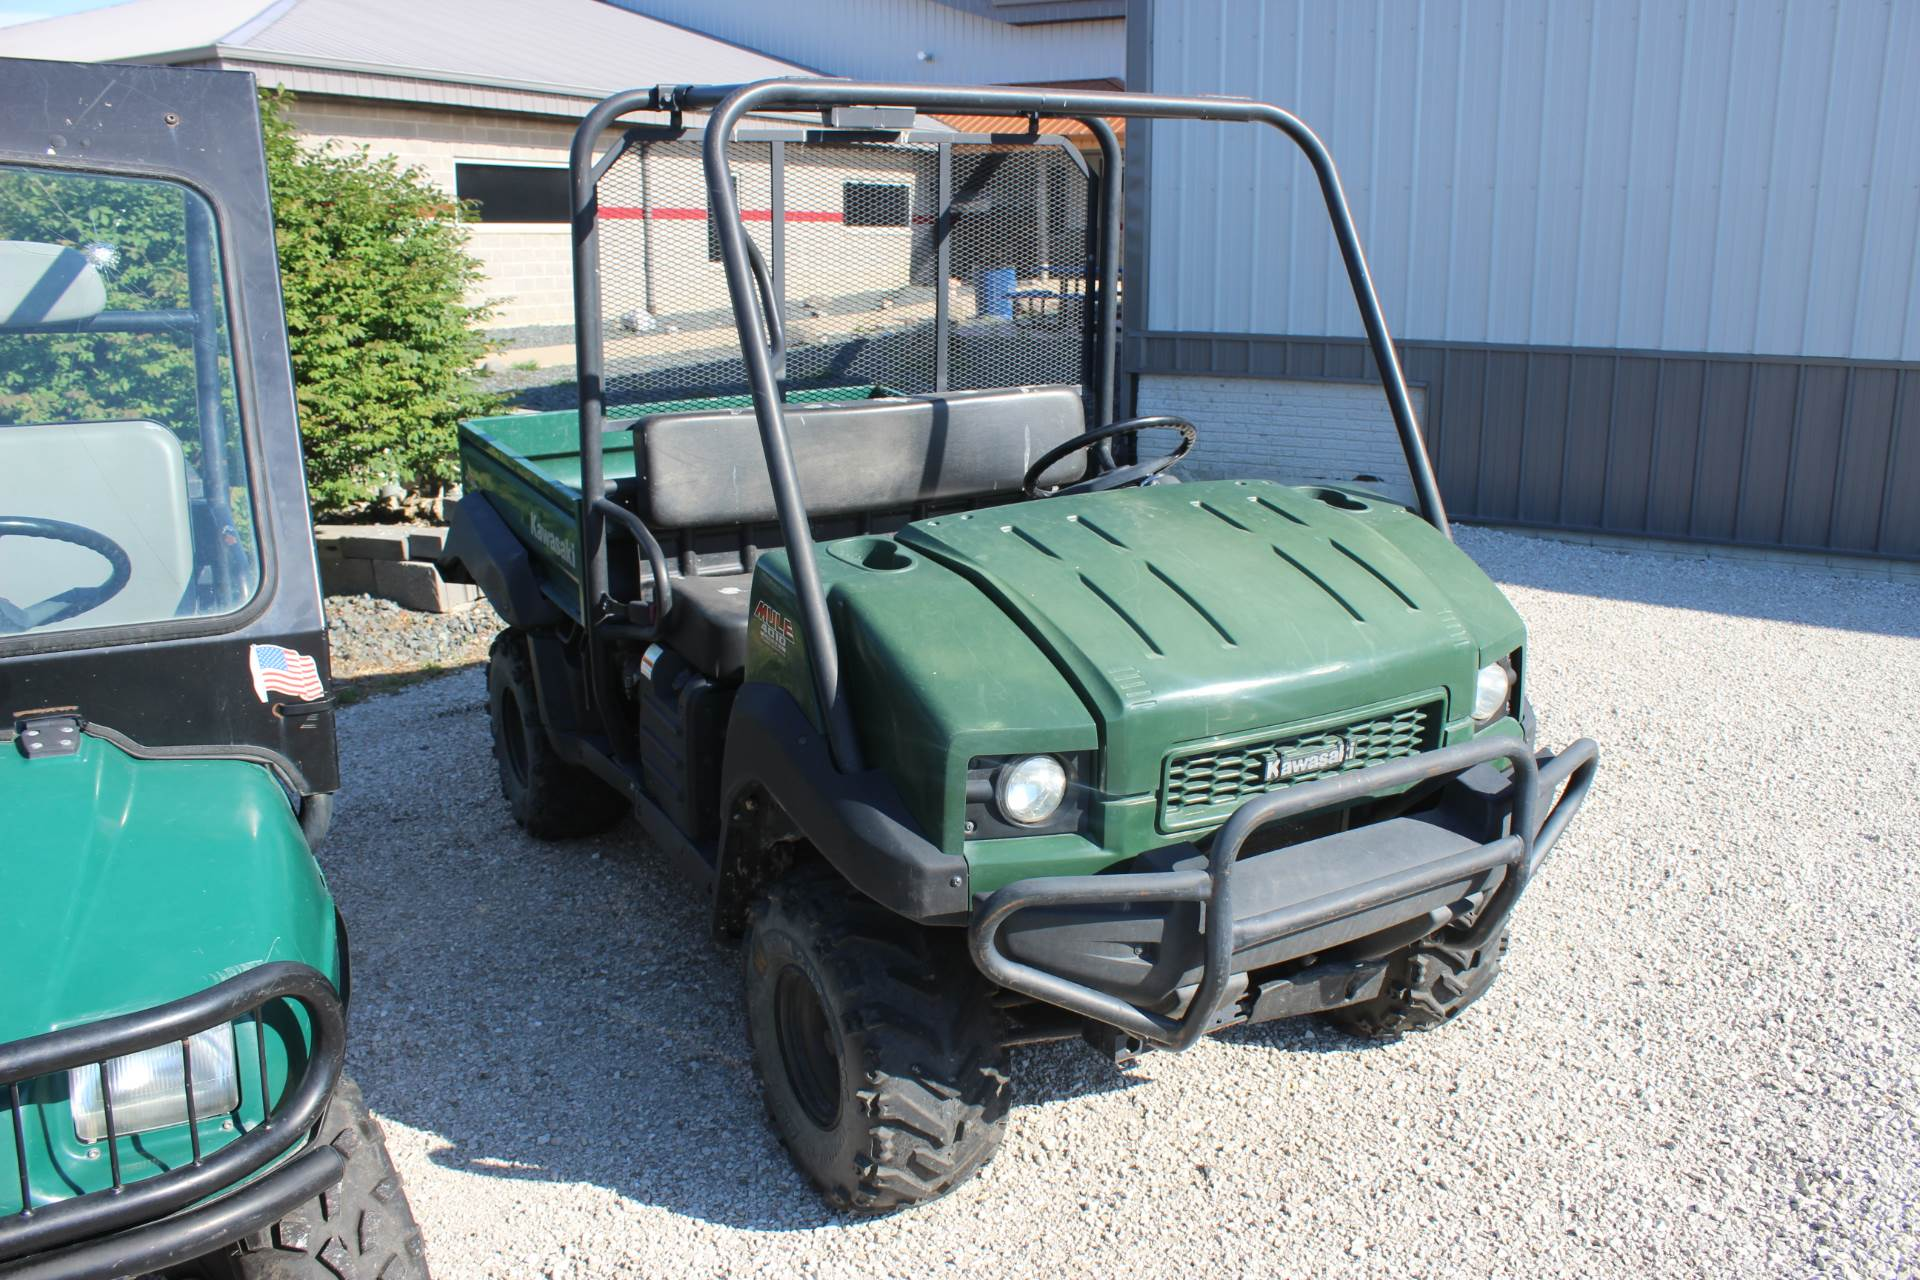 2012 Kawasaki Mule™ 4010 4x4 in Ottumwa, Iowa - Photo 3